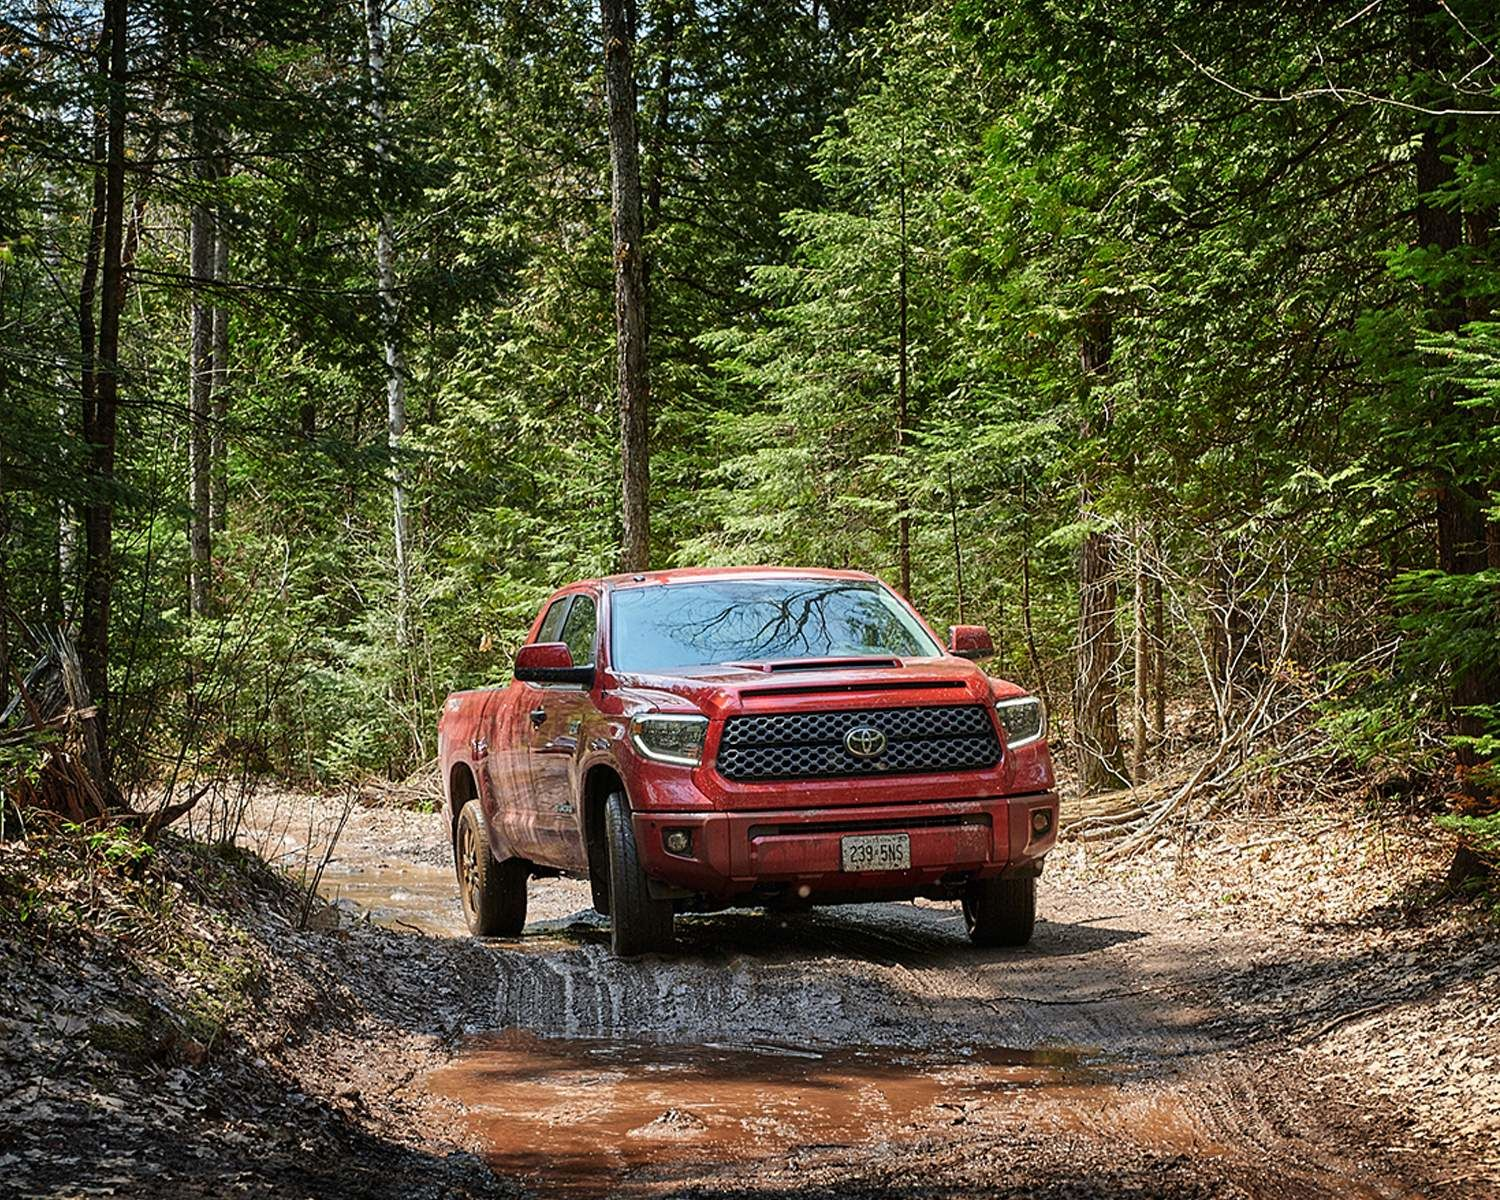 2020 Tundra 4x4 Double Cab TRD Sport in Barcelona Red